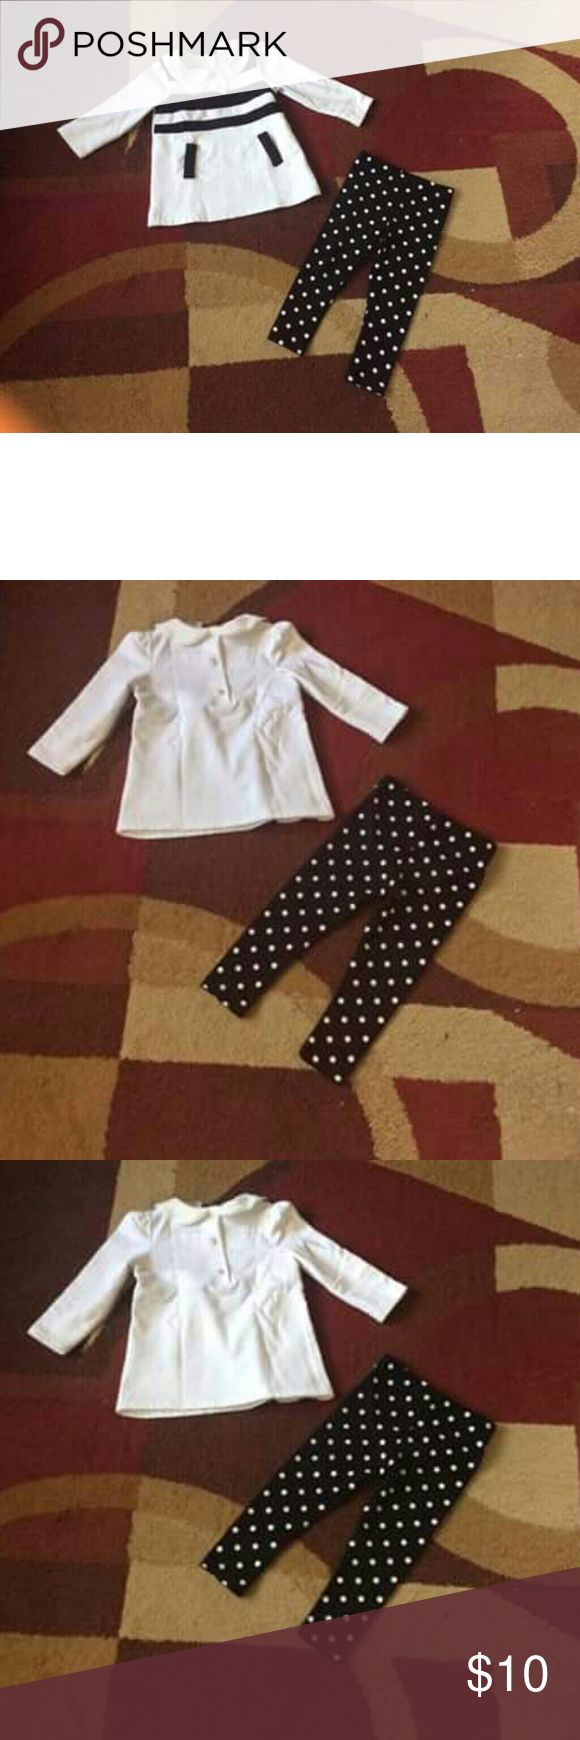 Baby girl legging outfit 18m Excellent shape Savannah white polka dots pants outfit18m color black & white.Top is stripes black & white & 3 buttons on back. Used couple of times from new. 95% cotton & 5% spandex made in China. From smoke & pet free home. No holes & no stain. Bundle for less & save shipping. Have a great day! Savannah Bottoms Leggings